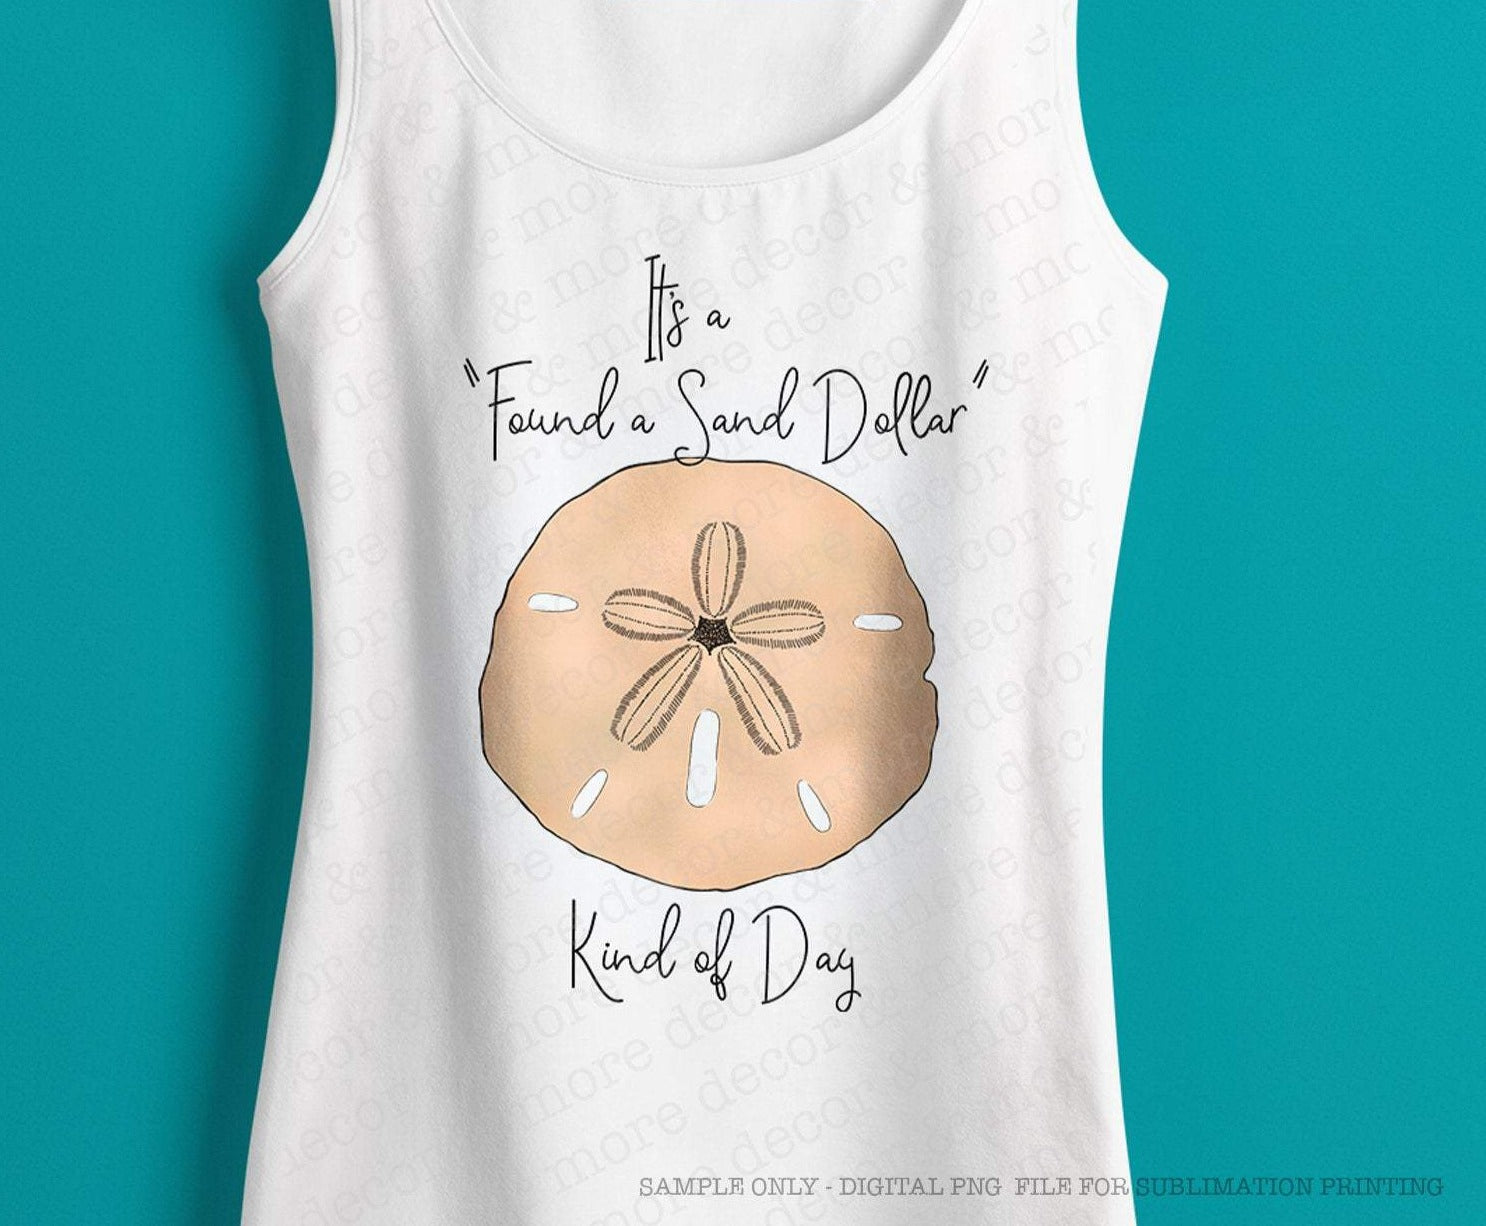 Beach Sublimation Design, Sand Dollar Digital Sublimation Download, Sublimation File for Beach Trip Shirt, Vacation Shirt png for DTG Printing, Summer png